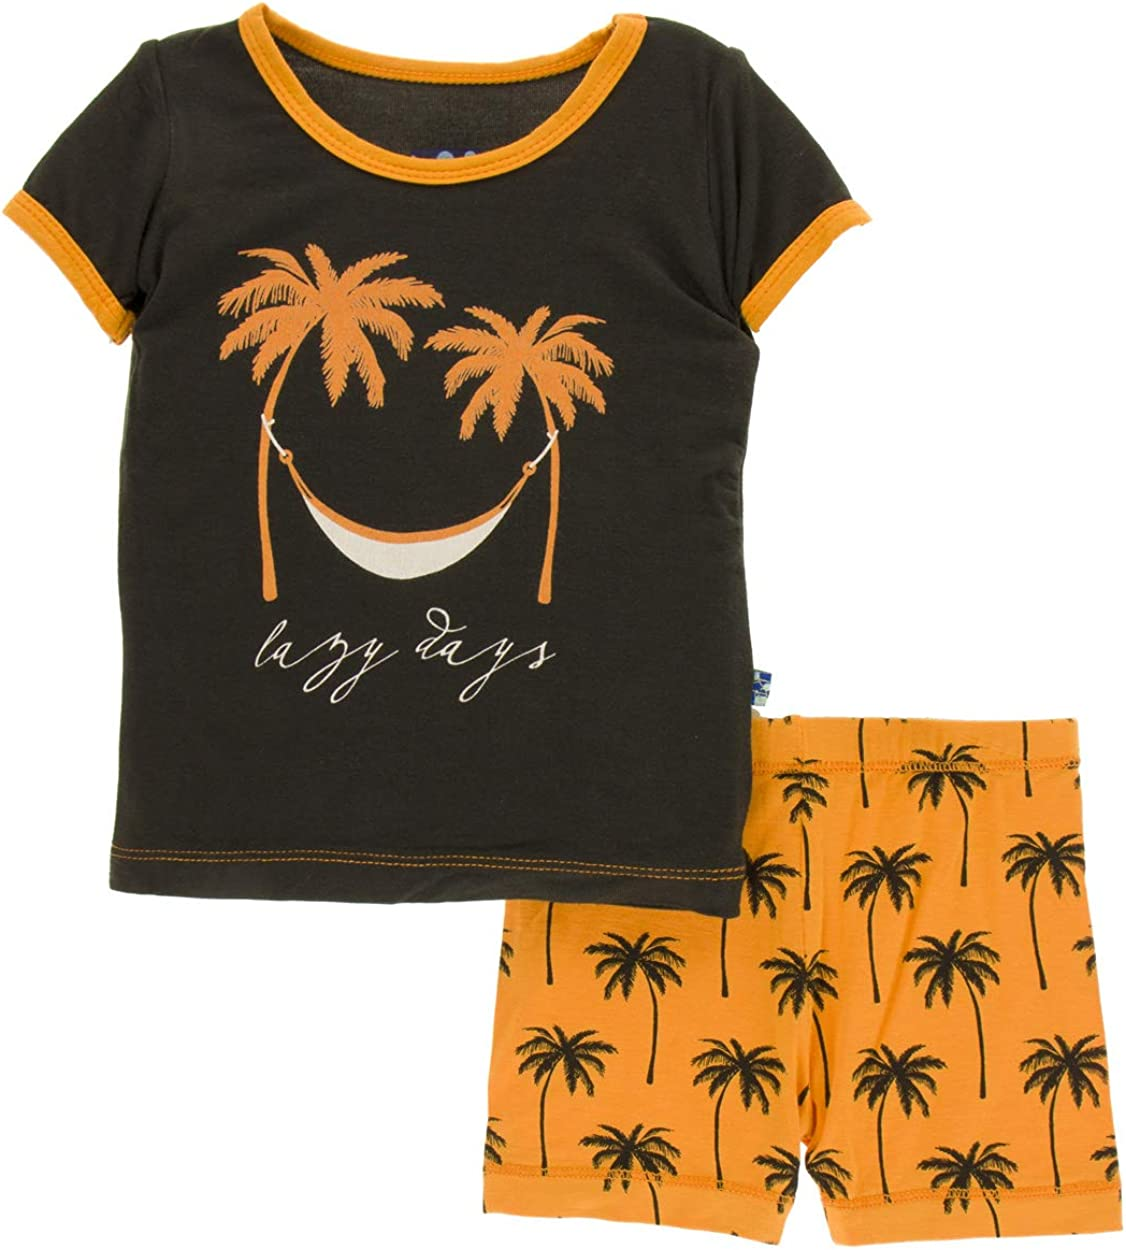 Apricot Palm Trees 4T Kickee Pants Little Boys Print Short Sleeve Pajama Set with Shorts